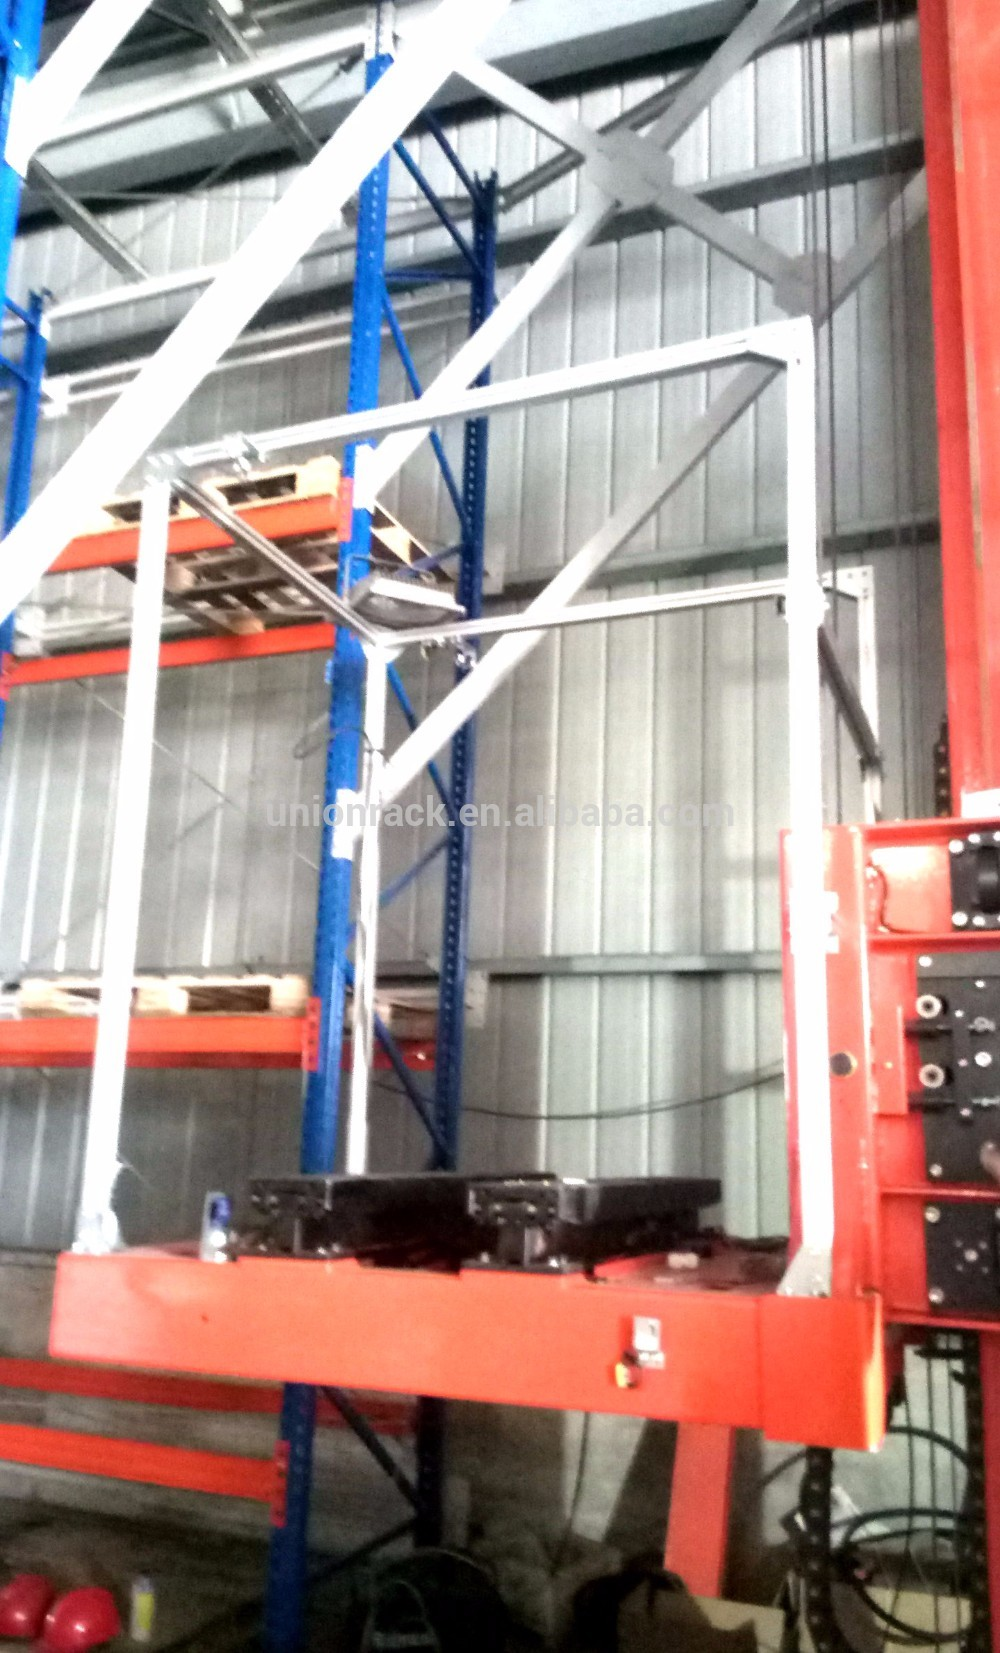 Manufacture Provide Directly Warehouse Automatic Storage ASRS Rack System